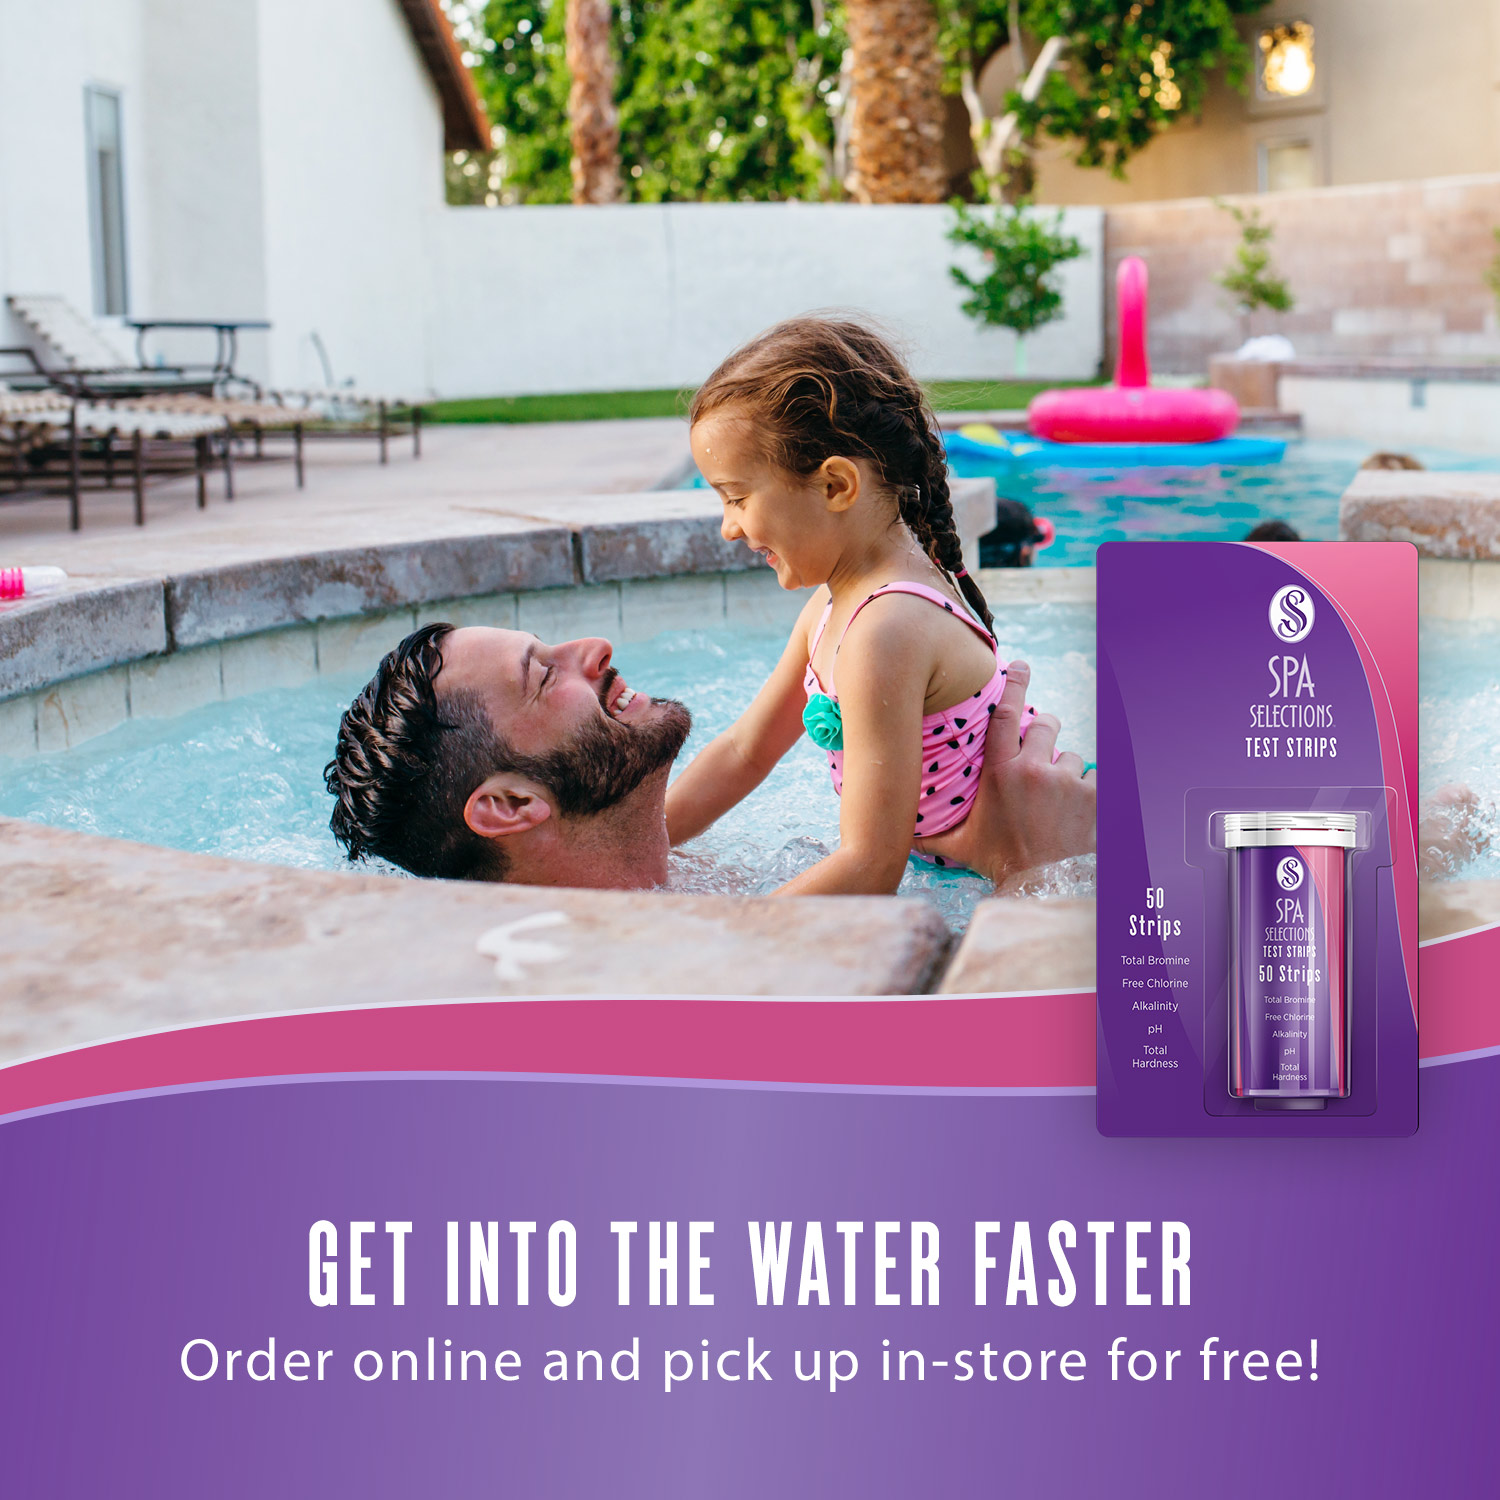 Spa Selections test strips allow you to get into the water faster by online ordering and pick up in-store for free! Man and daughter enjoying an outdoor spa.